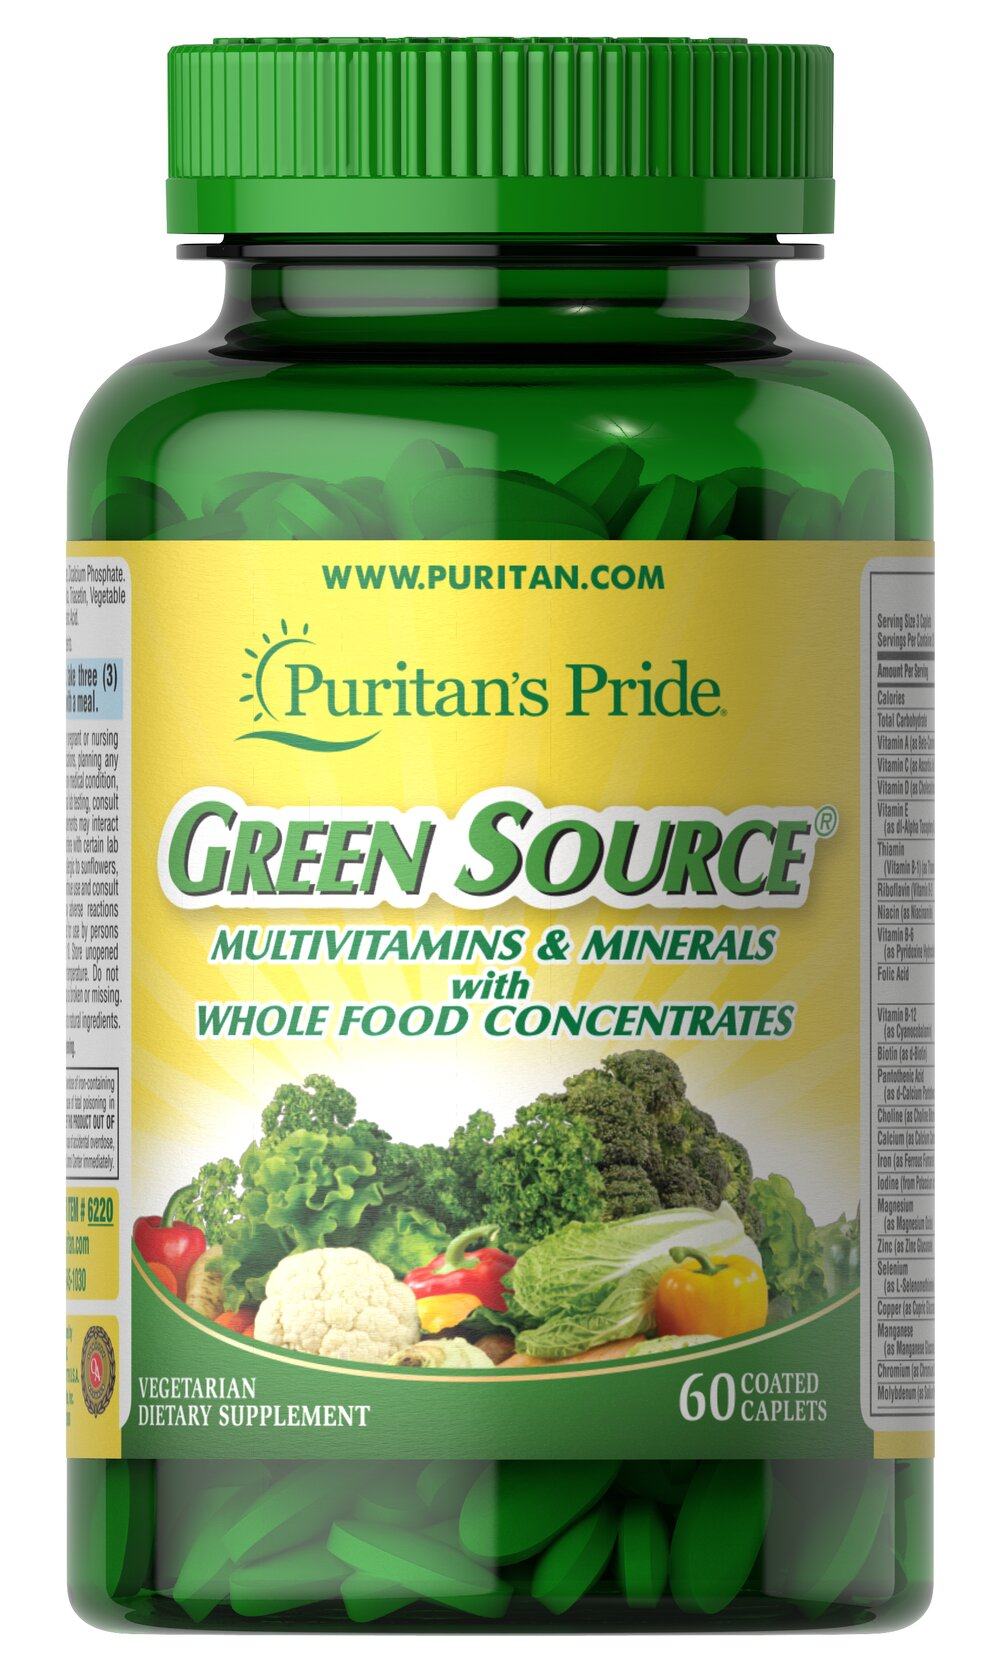 Green Source® Multivitamin & Minerals <p>This concentrated formula contains potent food source nutrients to provide essential vitamins, minerals, enzymes and amino acids. It also provides all the naturally occurring active constituents of whole foods.</p> 60 Caplets  $16.99